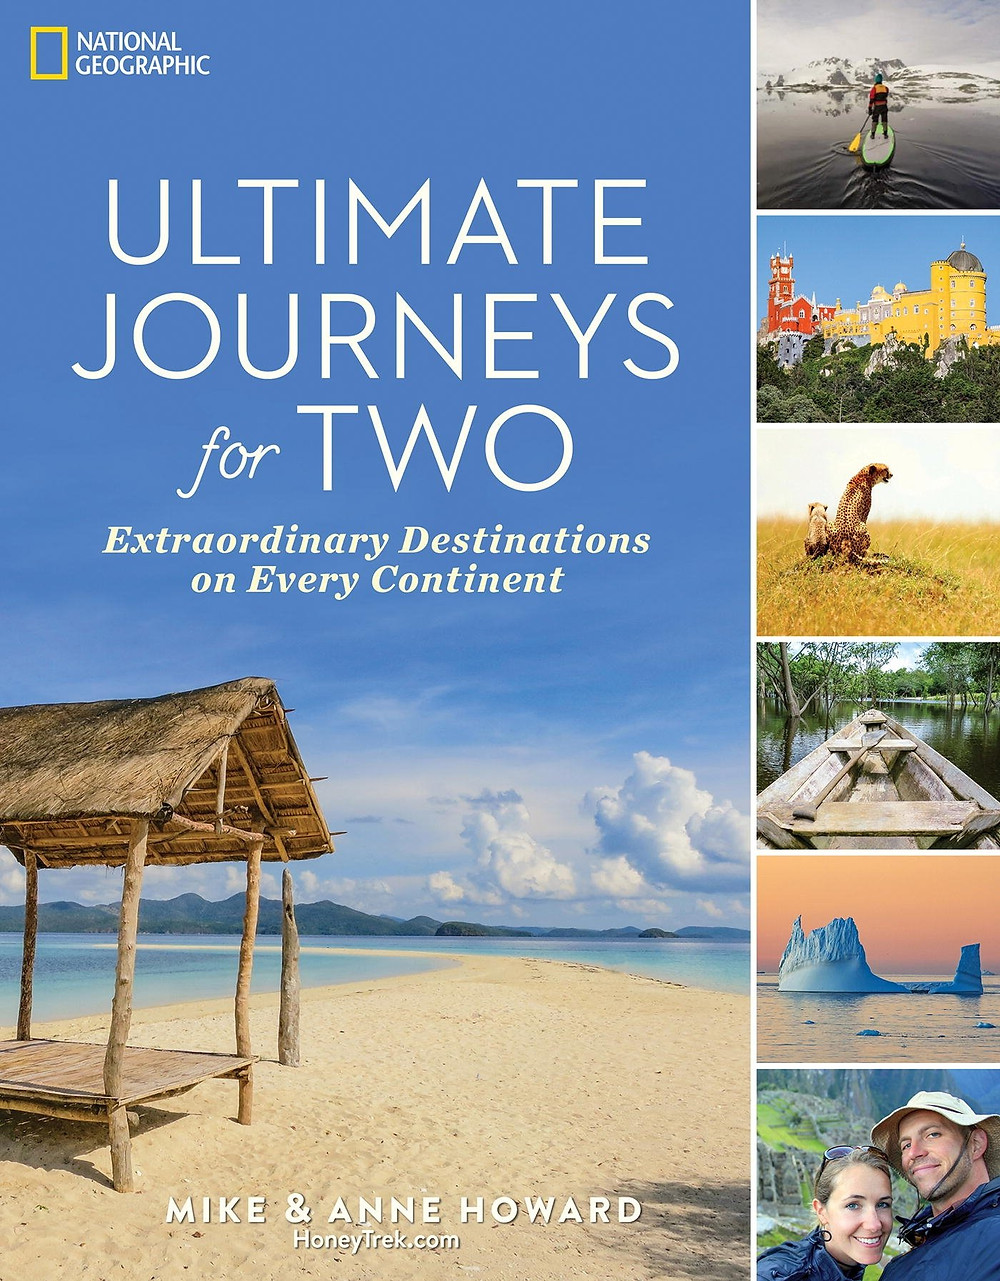 Valentine's Day gift travel book for couples